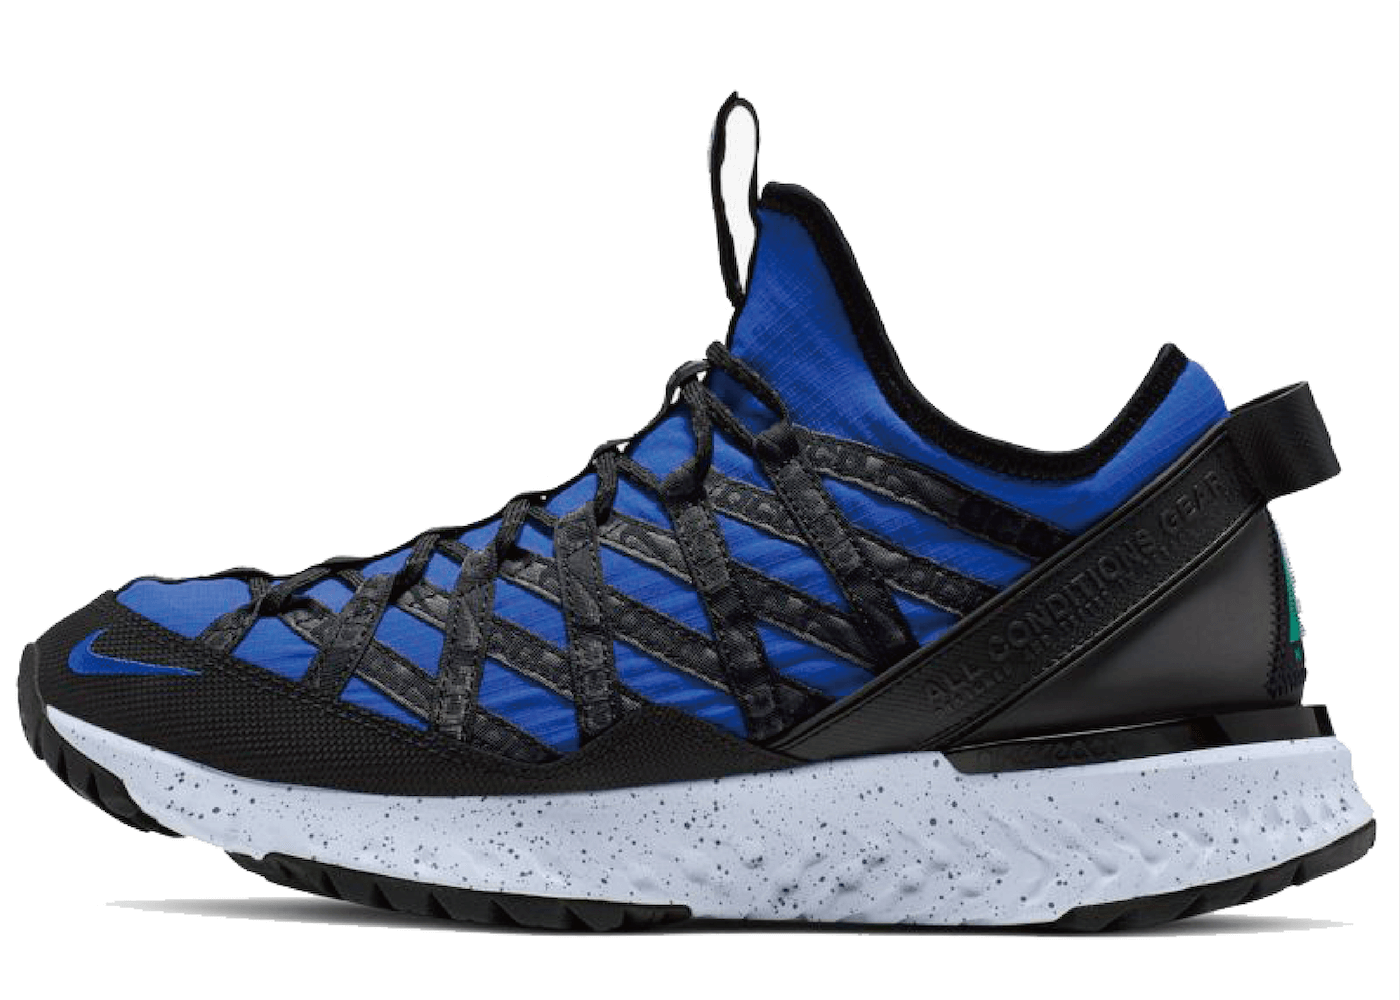 Nike ACG React Terra Gobe Hyper Royal Blackの写真